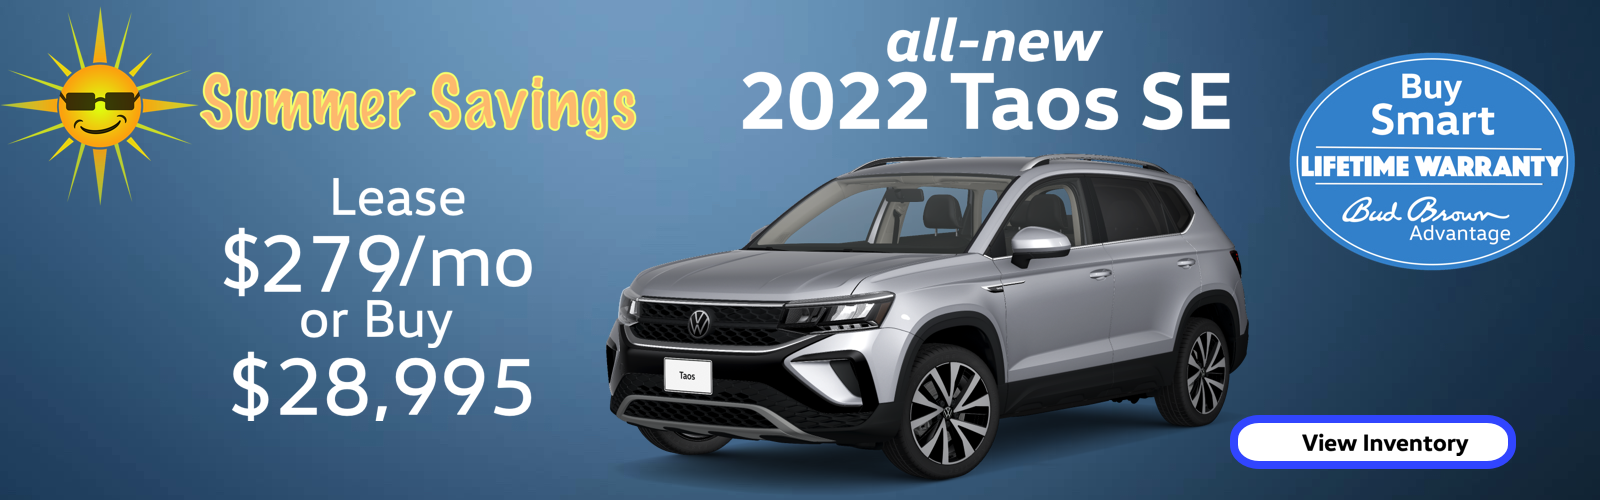 all-new 2022 VW Taos SE SUV for $279 per month